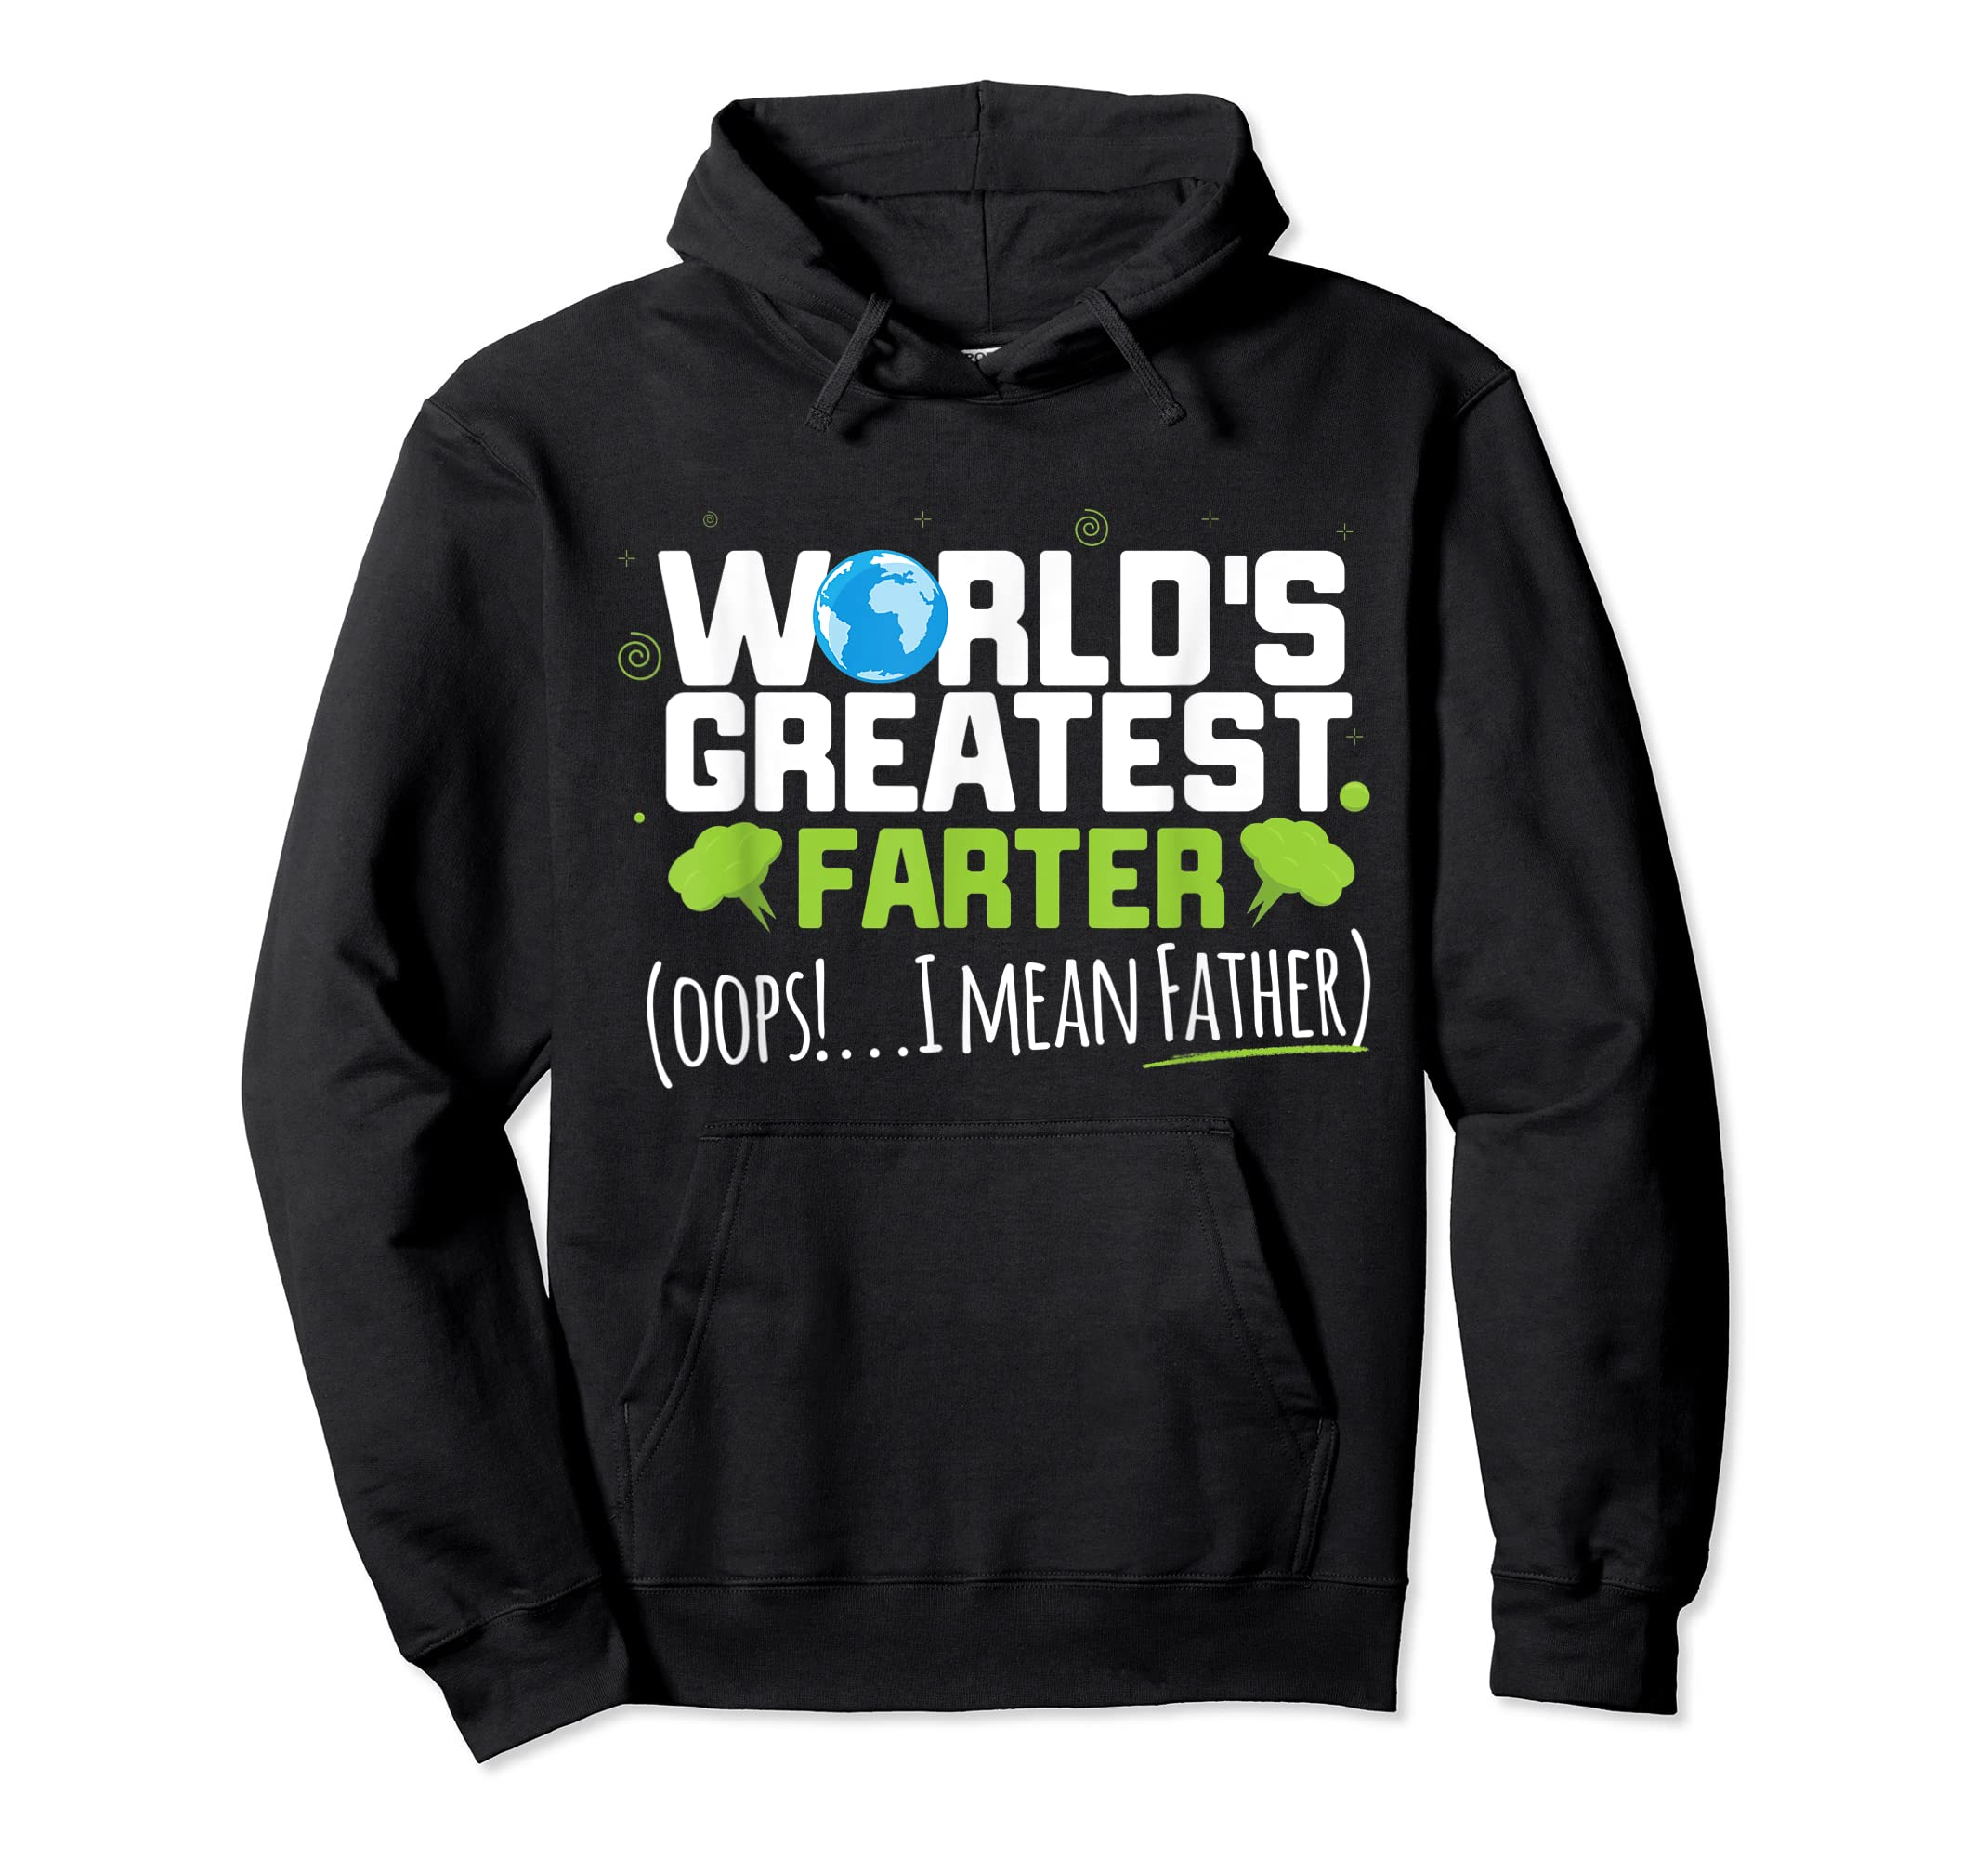 Mens World's Greatest Farter Oops! I Mean Father Shirt-Hoodie-Black